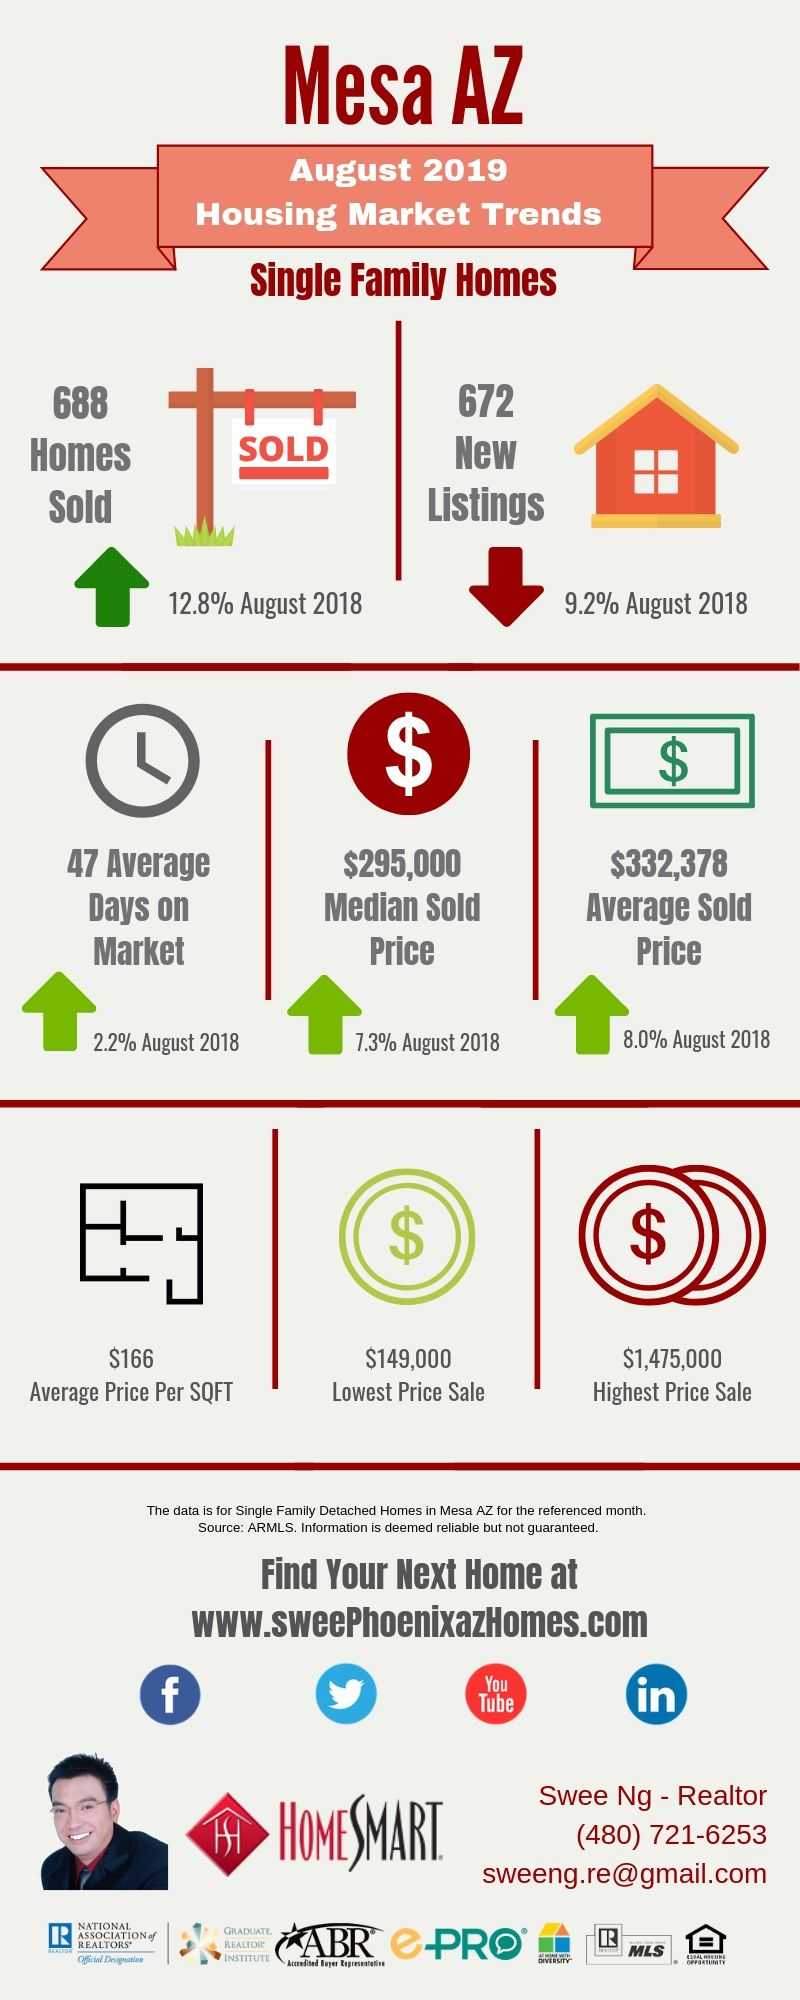 August 2019 Mesa AZ Housing Market Update by Swee Ng, Real Estate and House Value